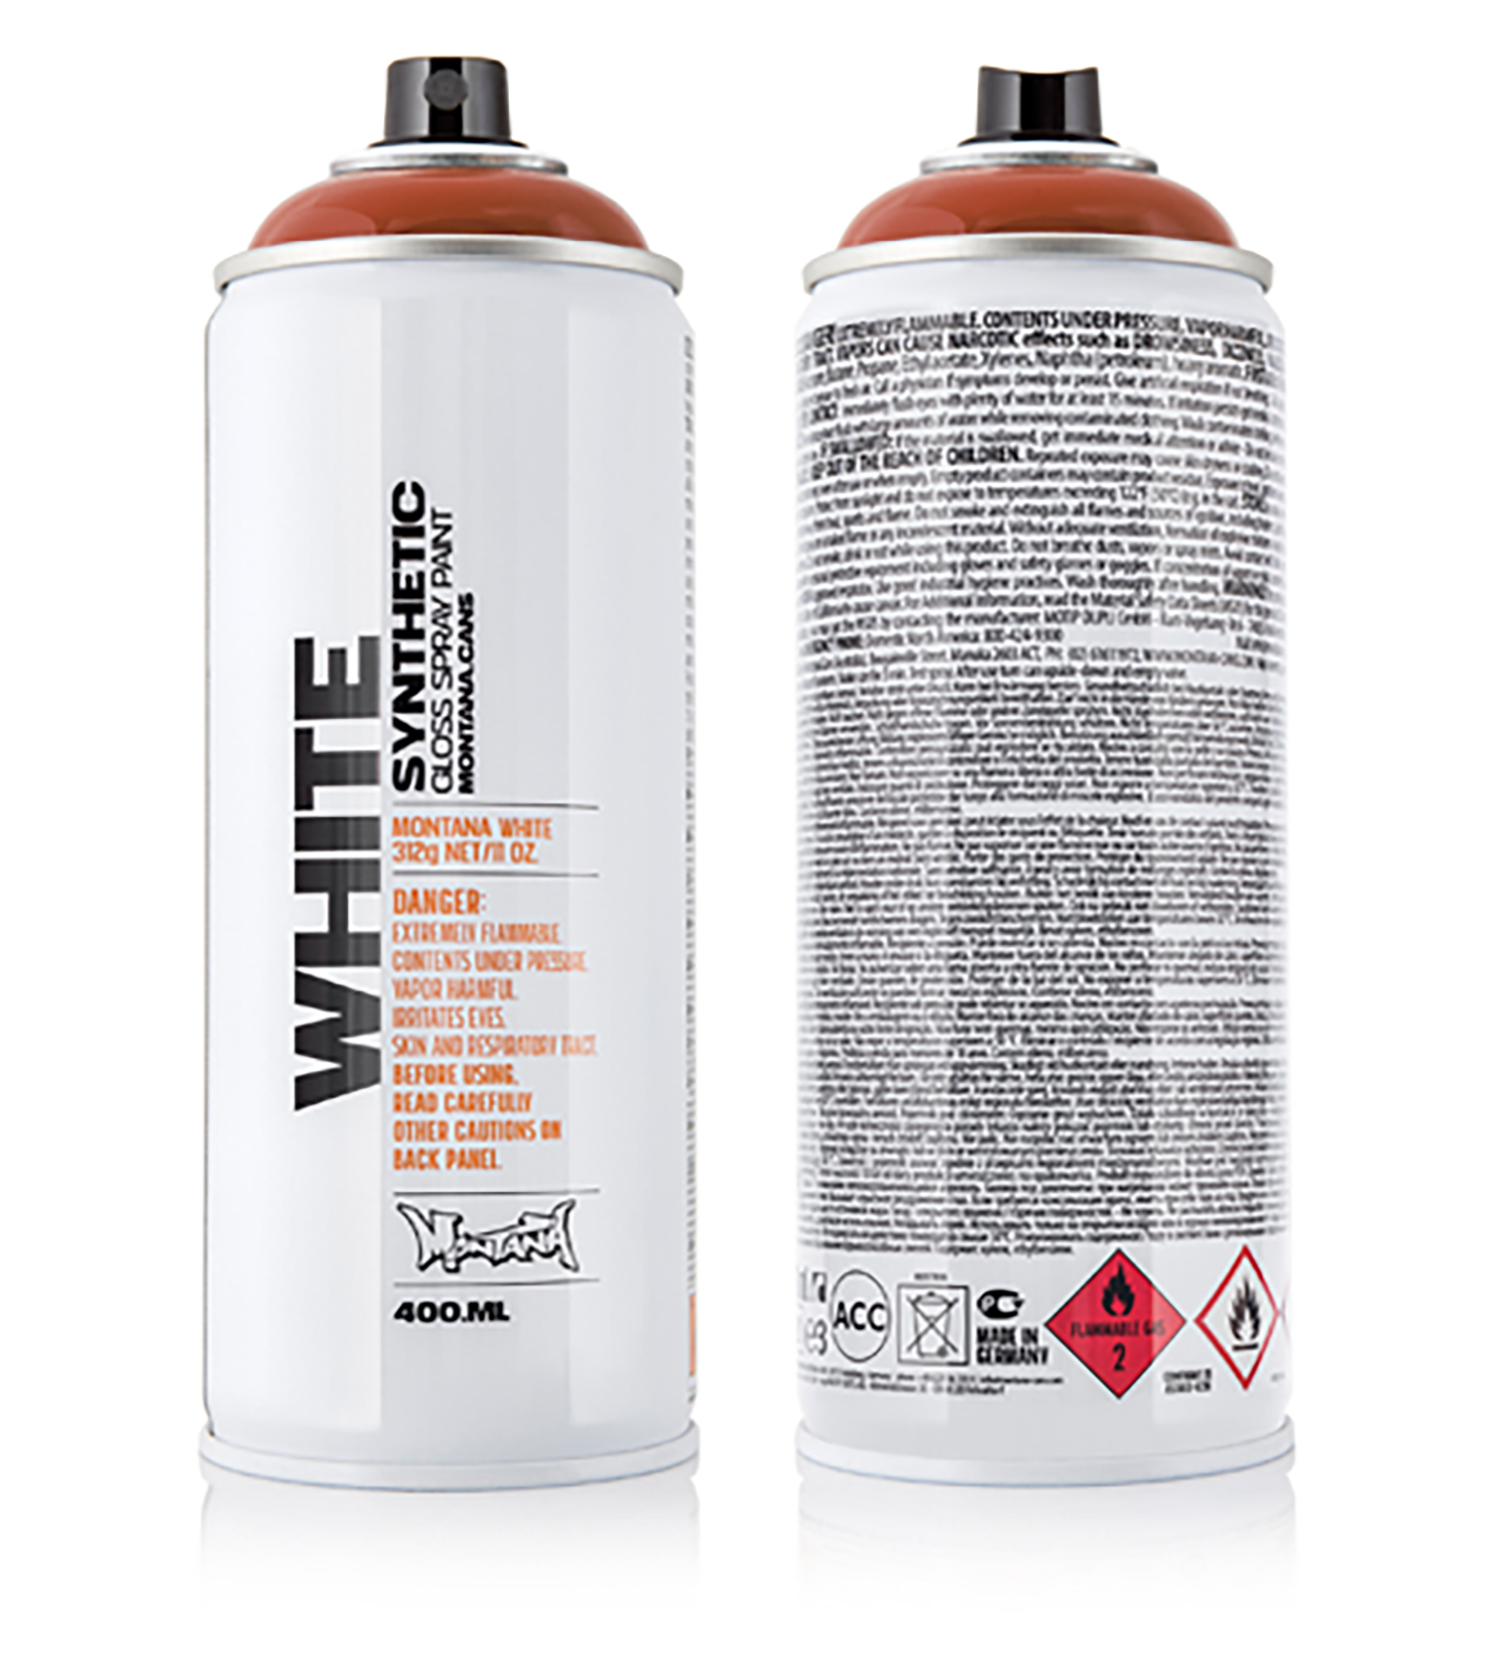 MONTANA-WHITE-SPRAY-400ML-4230